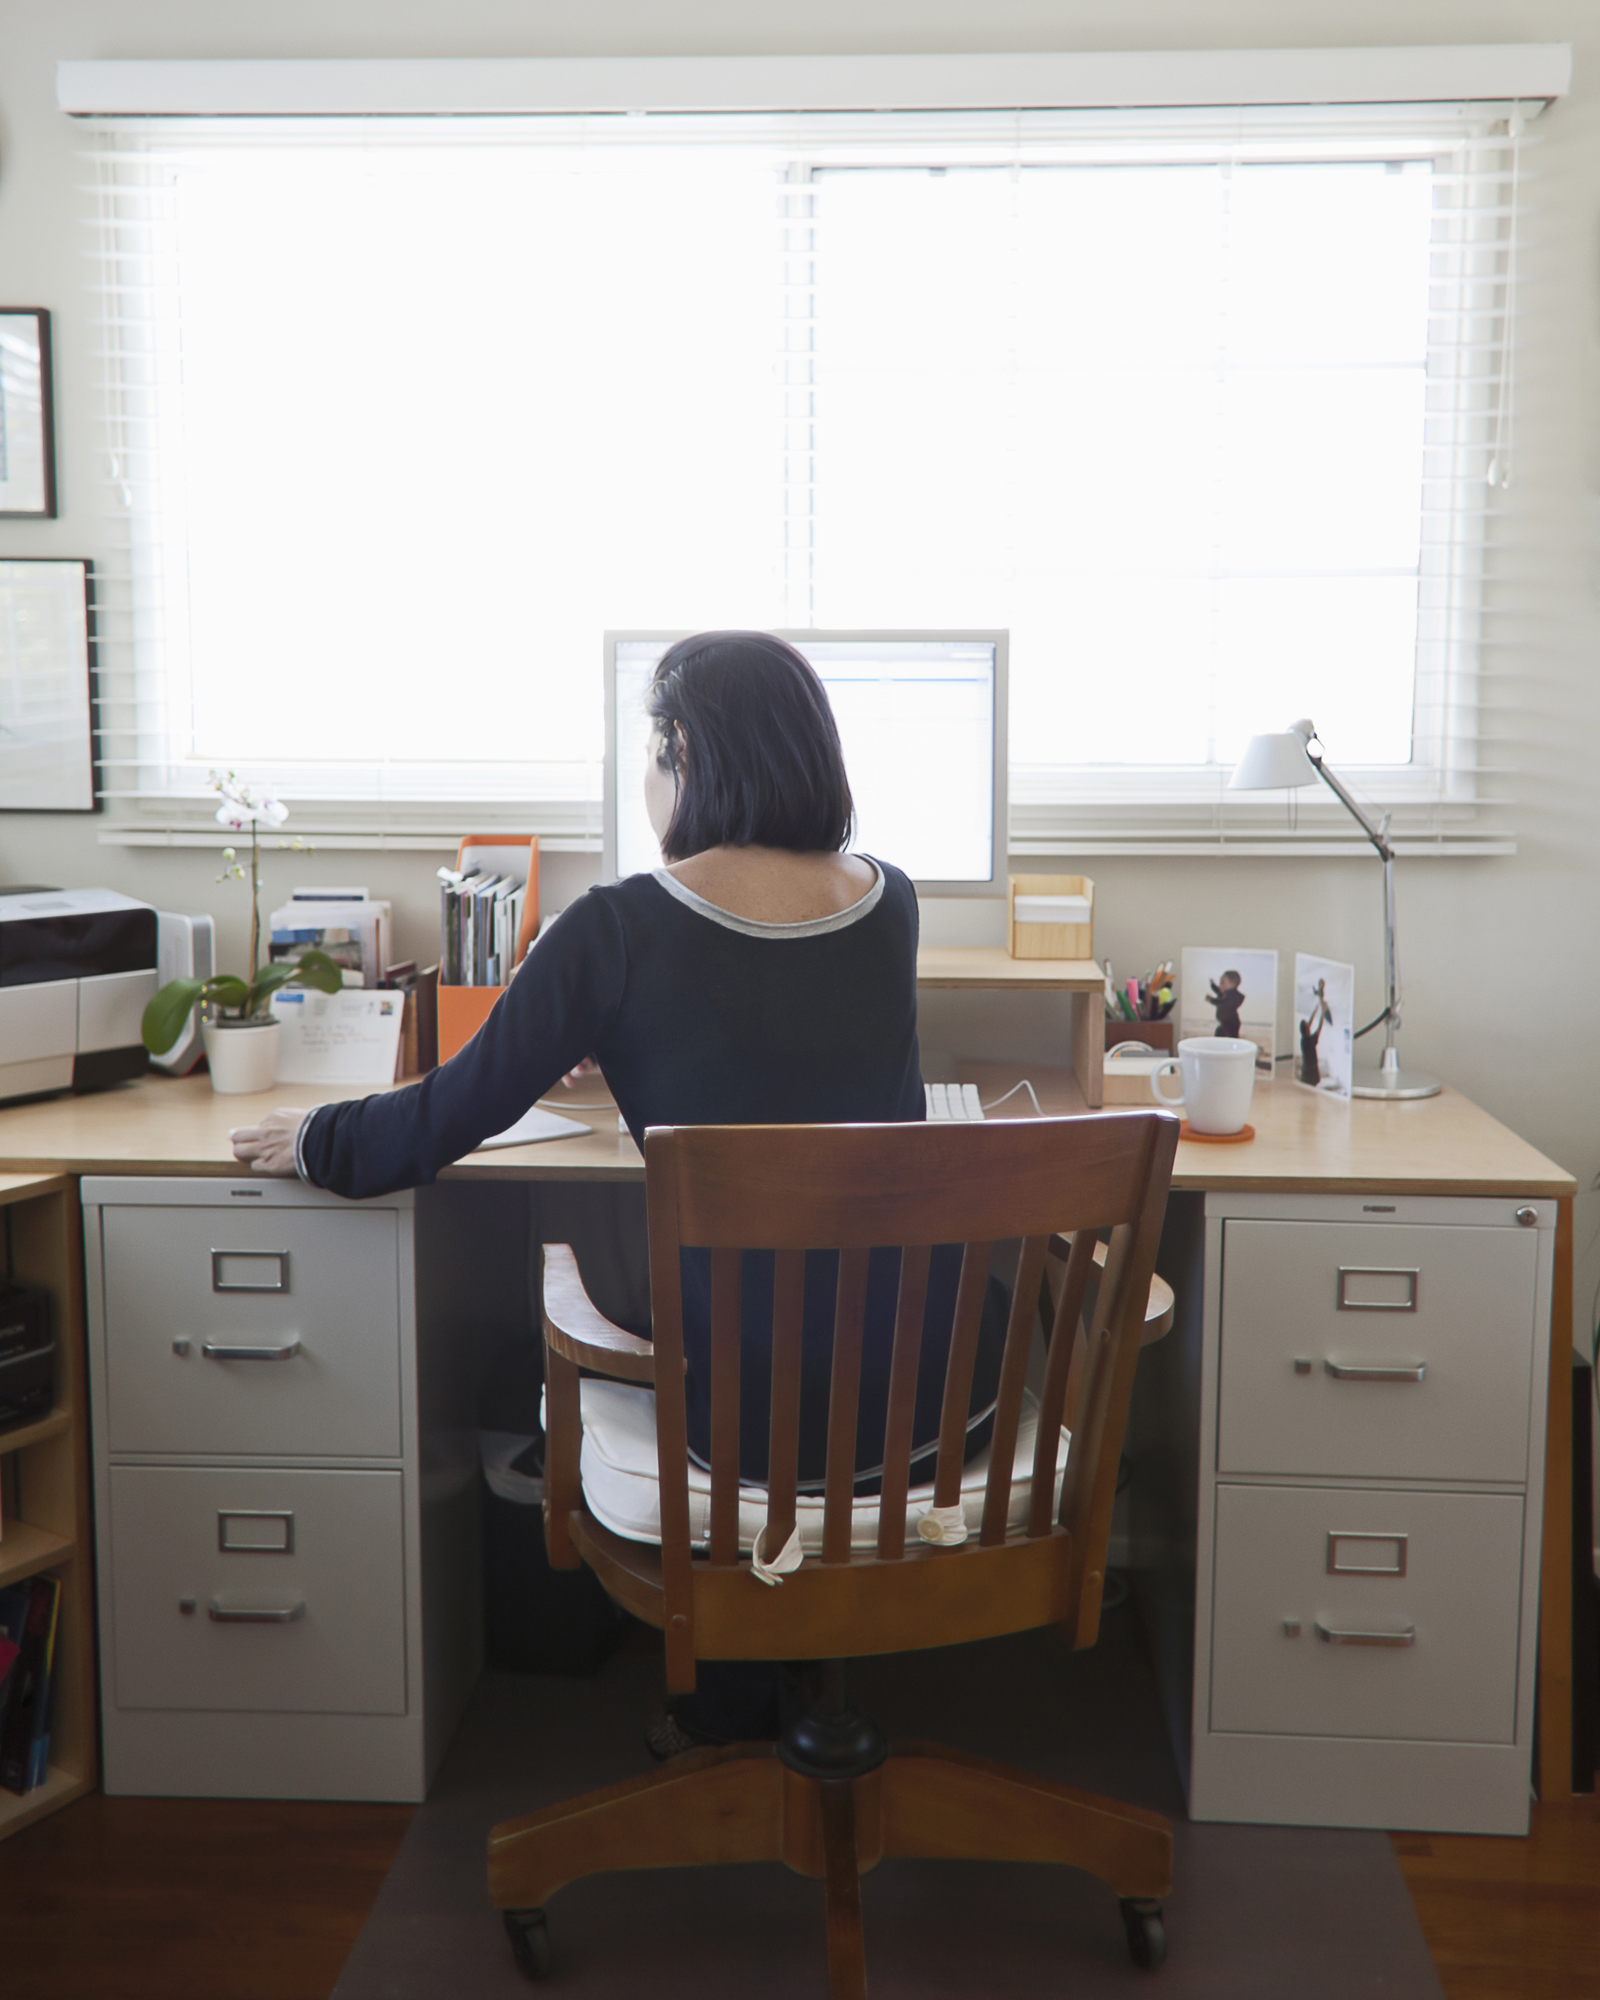 woman-desk-computer-window